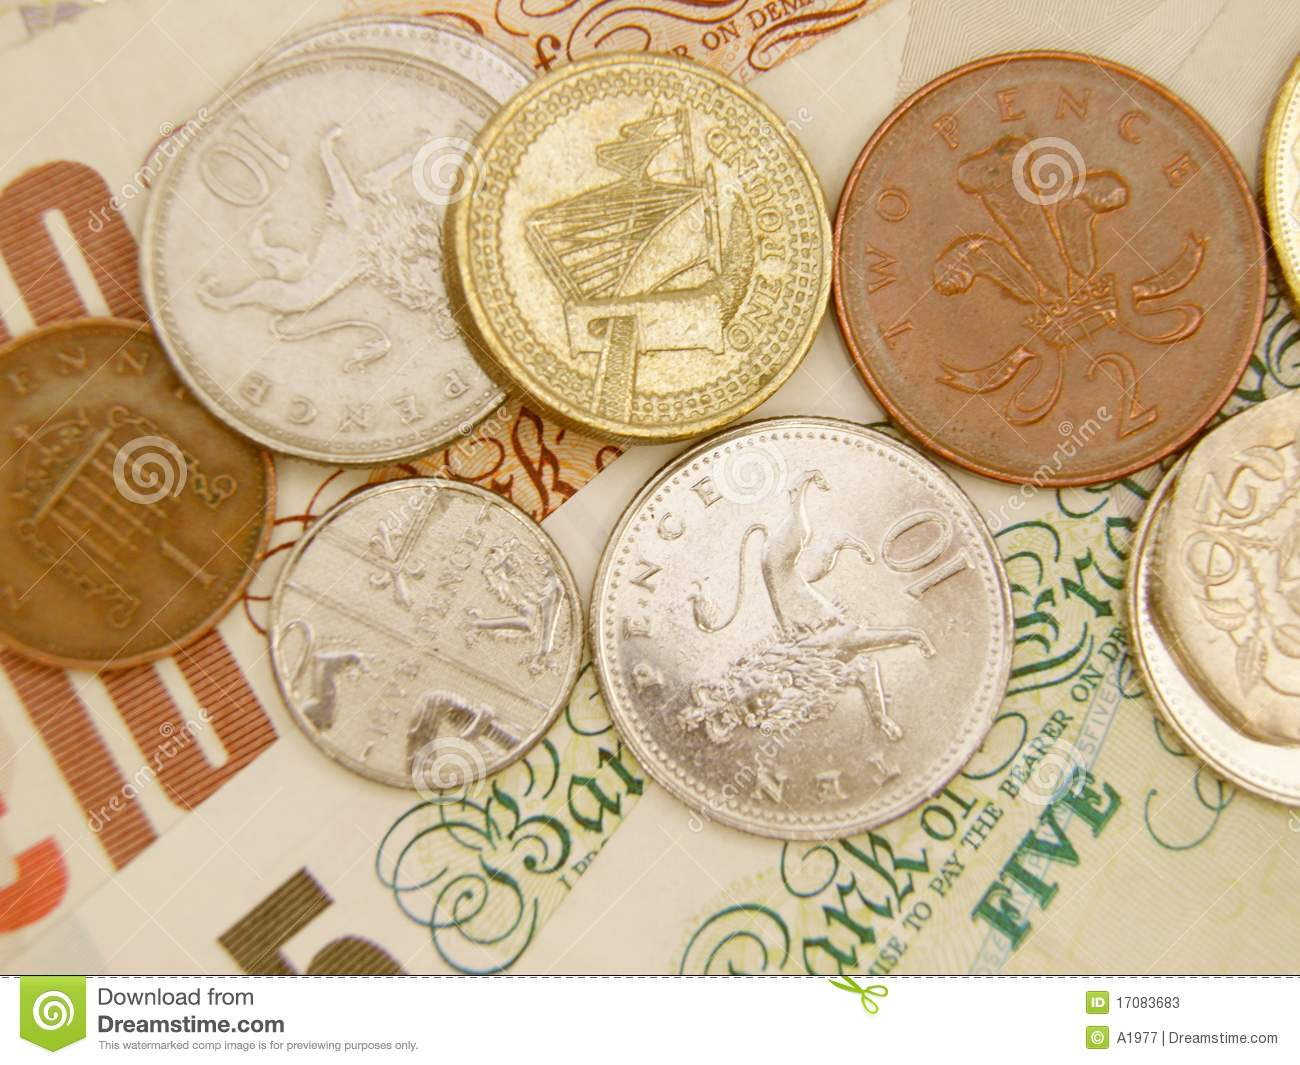 GBP banknotes and coins stock image  Image of mint, save